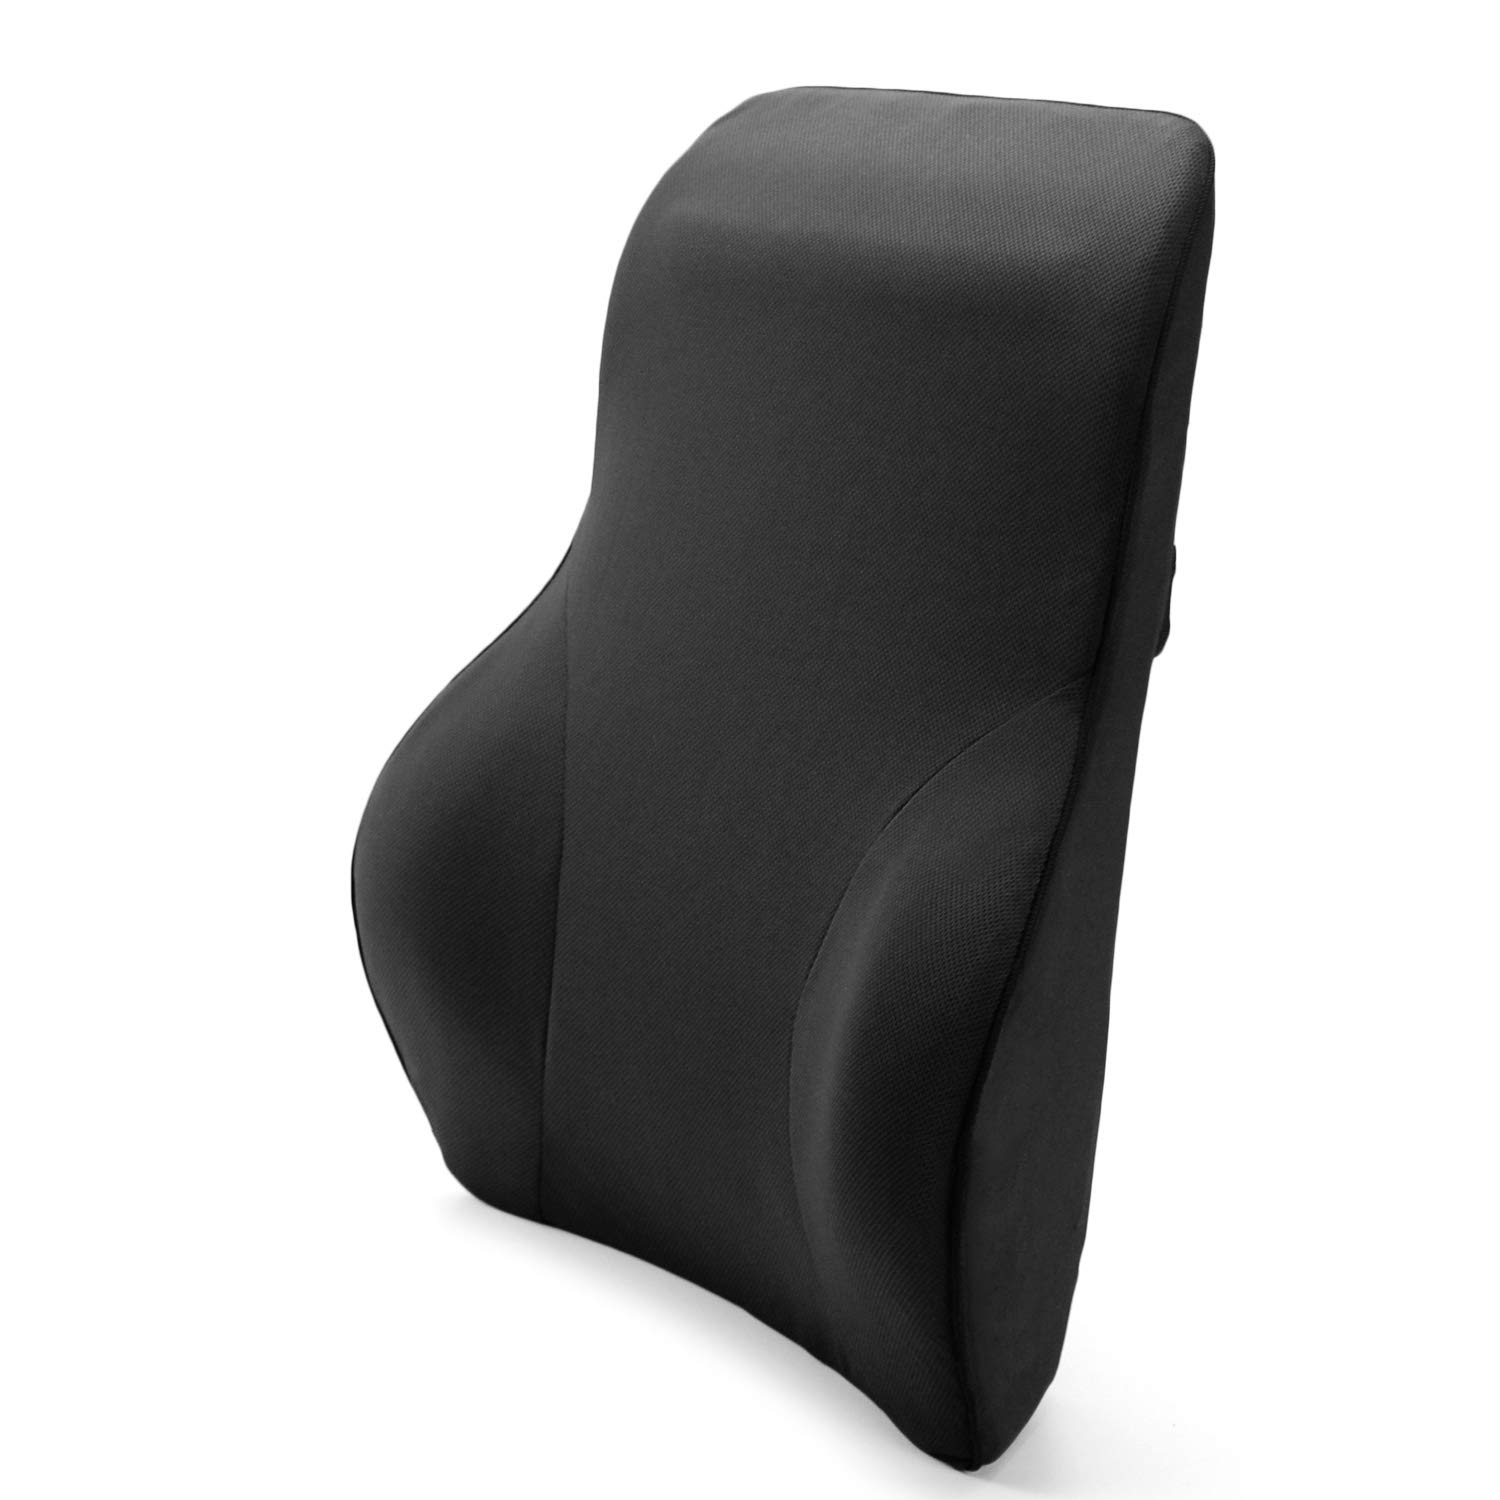 Tektrum Full Lumbar Entire Back Support Cushion for Home/Office Chair, Car Seat - Washable Cover, Ergonomic Thick 3D Design Fit Body Curve - Back Pain Relief, Improve Posture - Black (TD-QFC024-BLK)